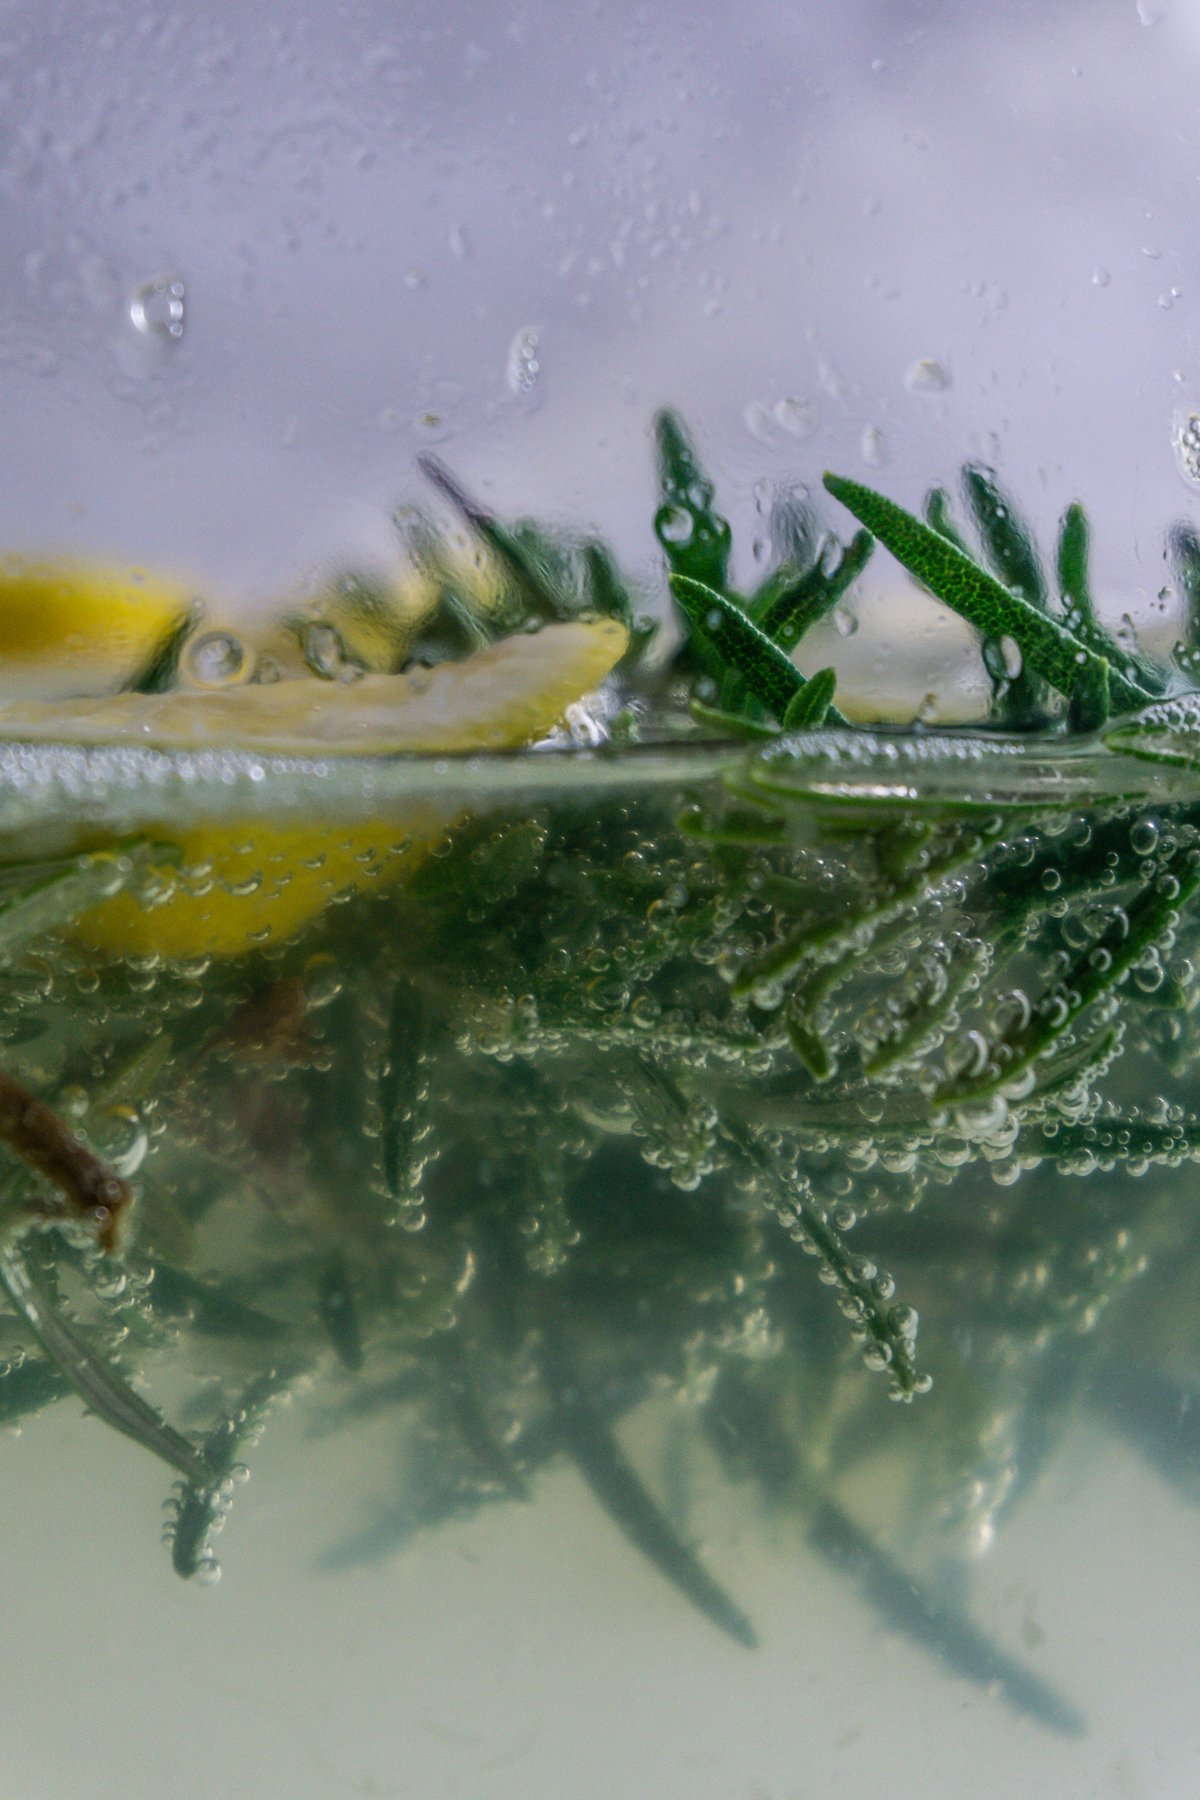 Rosemary and lemon seen half in water with gas bubbles